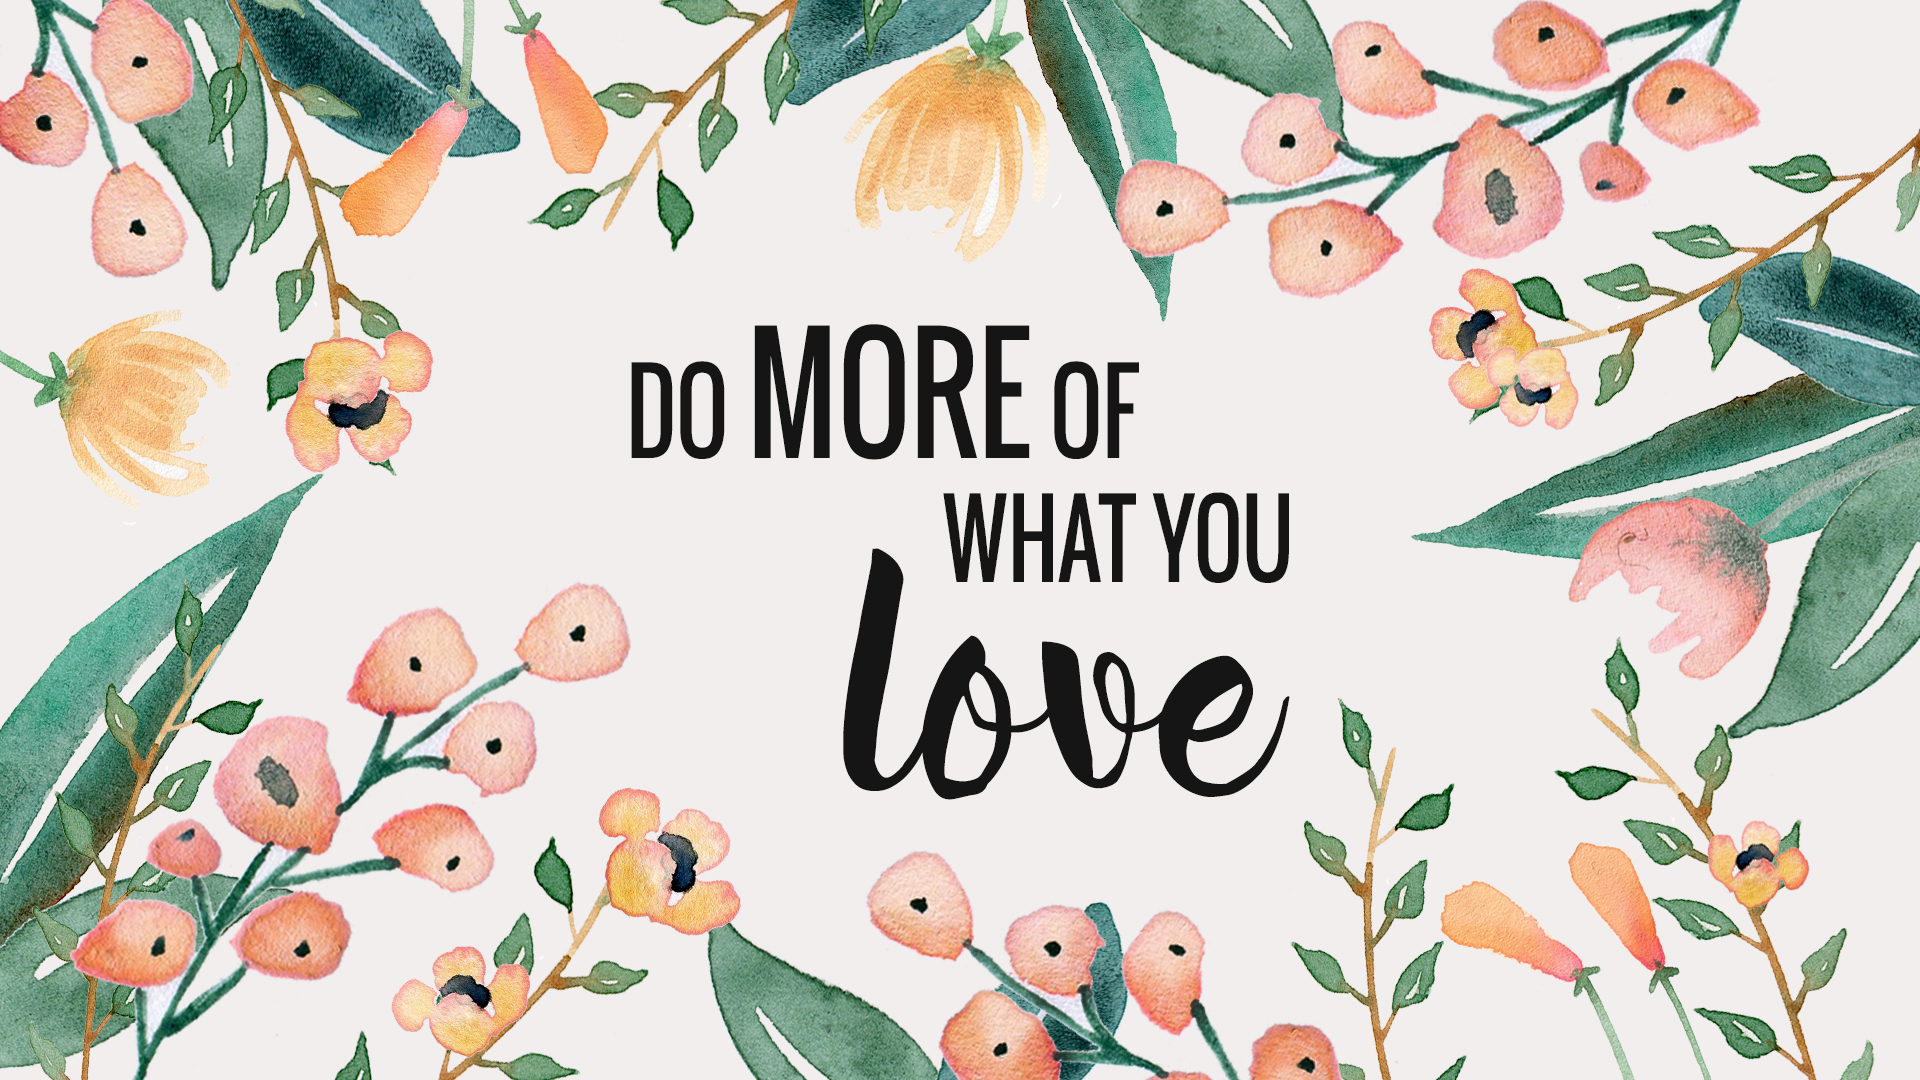 Free Wallpaper Do More Of What You Love Paper And Landscapes